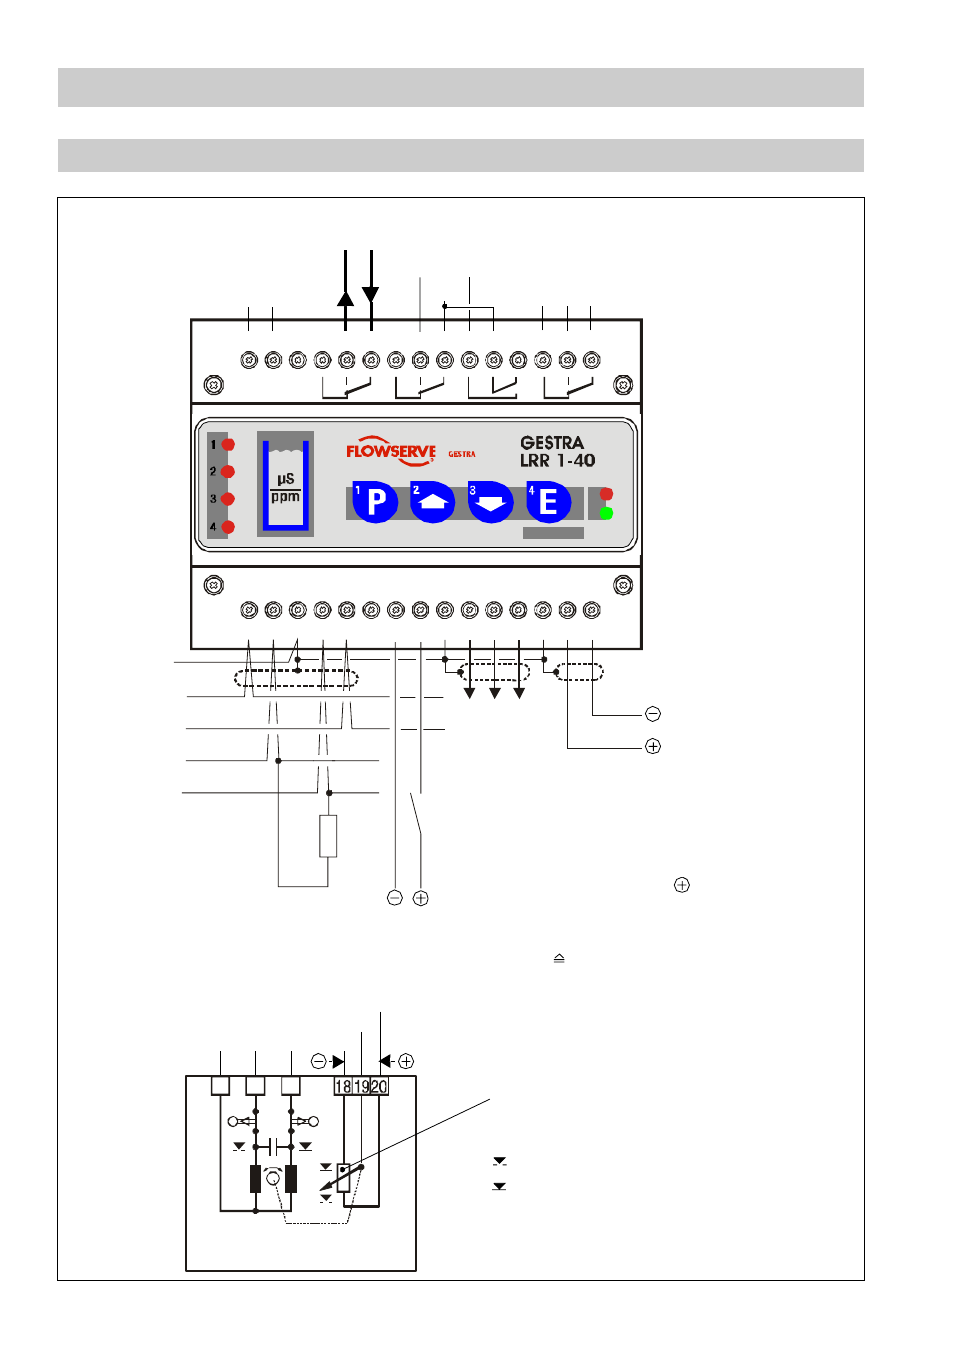 Flowserve Wiring Diagram - Wiring Diagram Update on boeing engine, boeing fuel tank, boeing dimensions, boeing wiring symbols, boeing assembly, boeing wiring design, boeing exploded view, boeing antenna,